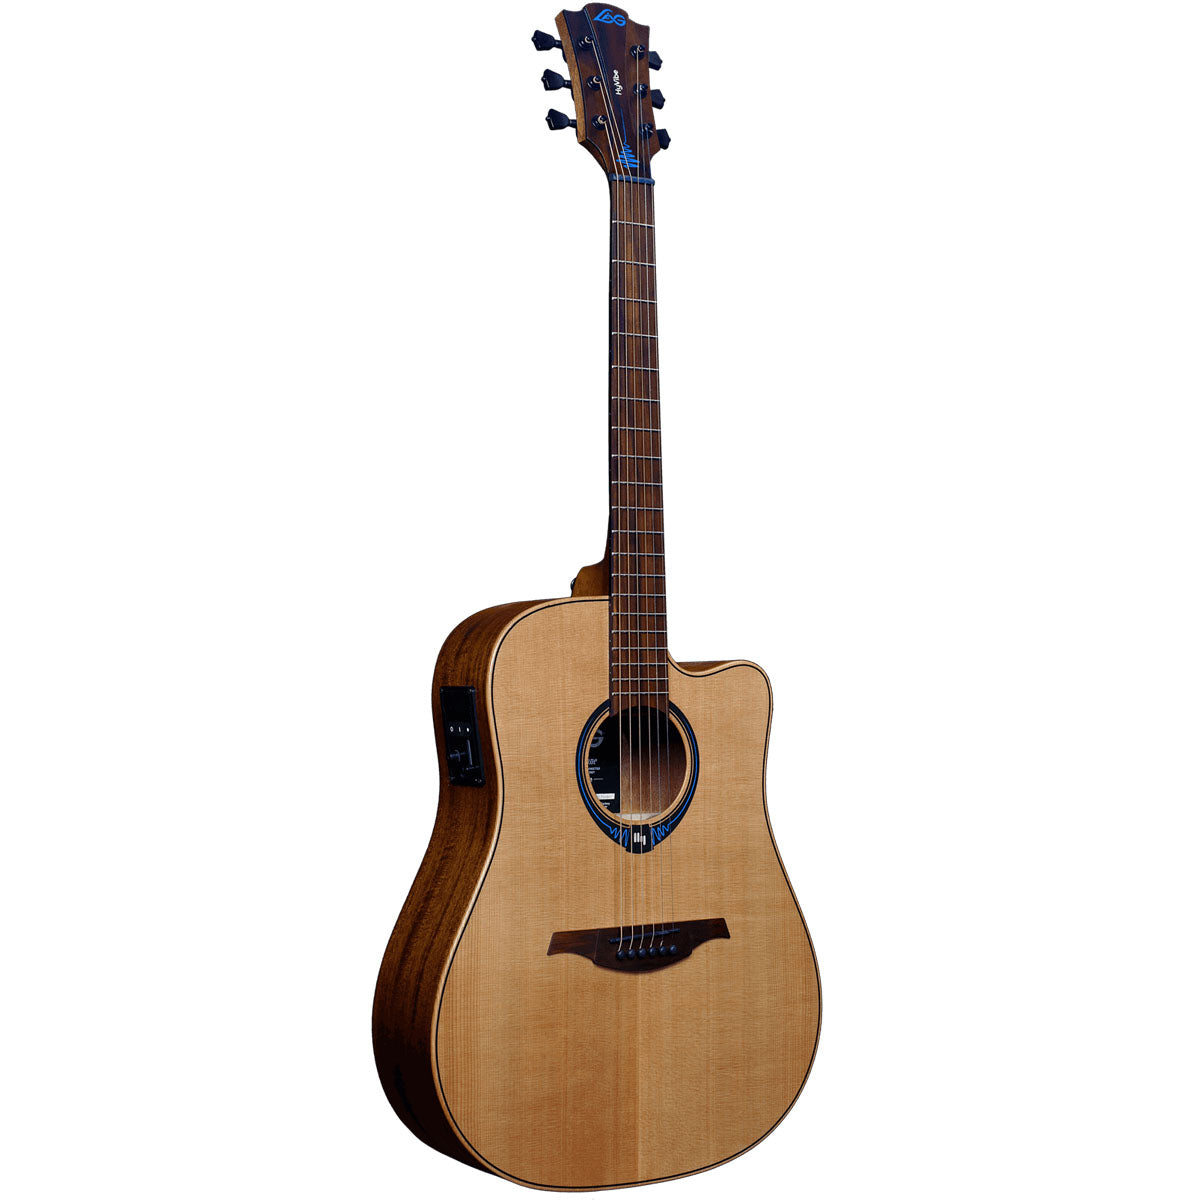 Lag Tramontane Hyvibe 10 THV10DCE Acoustic Guitar Dreadnought Solid Cedar Top w/ Pickup